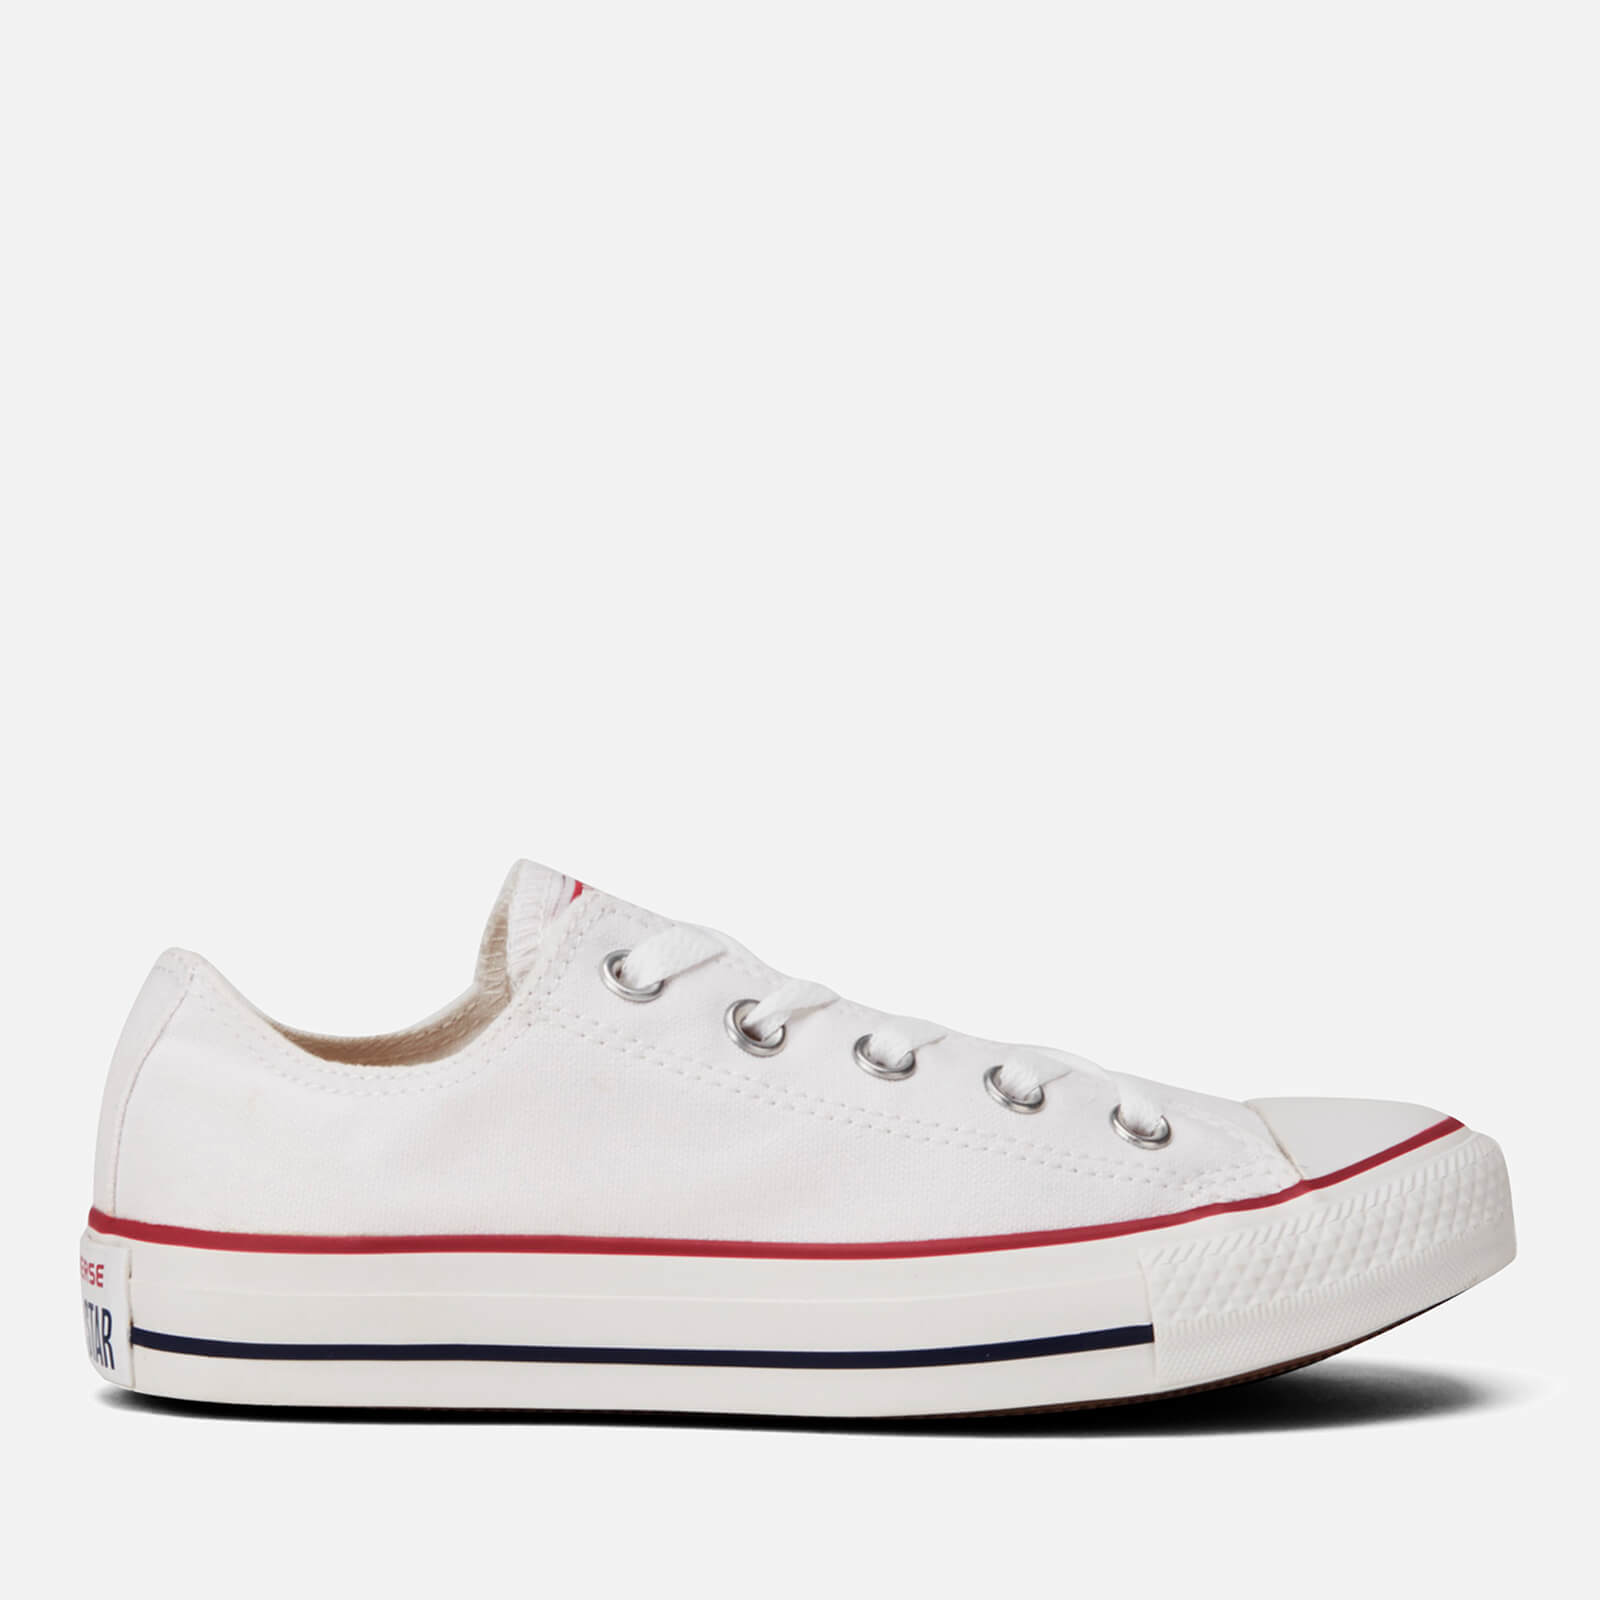 Heredero Concesión querido  Converse Chuck Taylor All Star Ox Trainers - Optical White | FREE UK  Delivery | Allsole